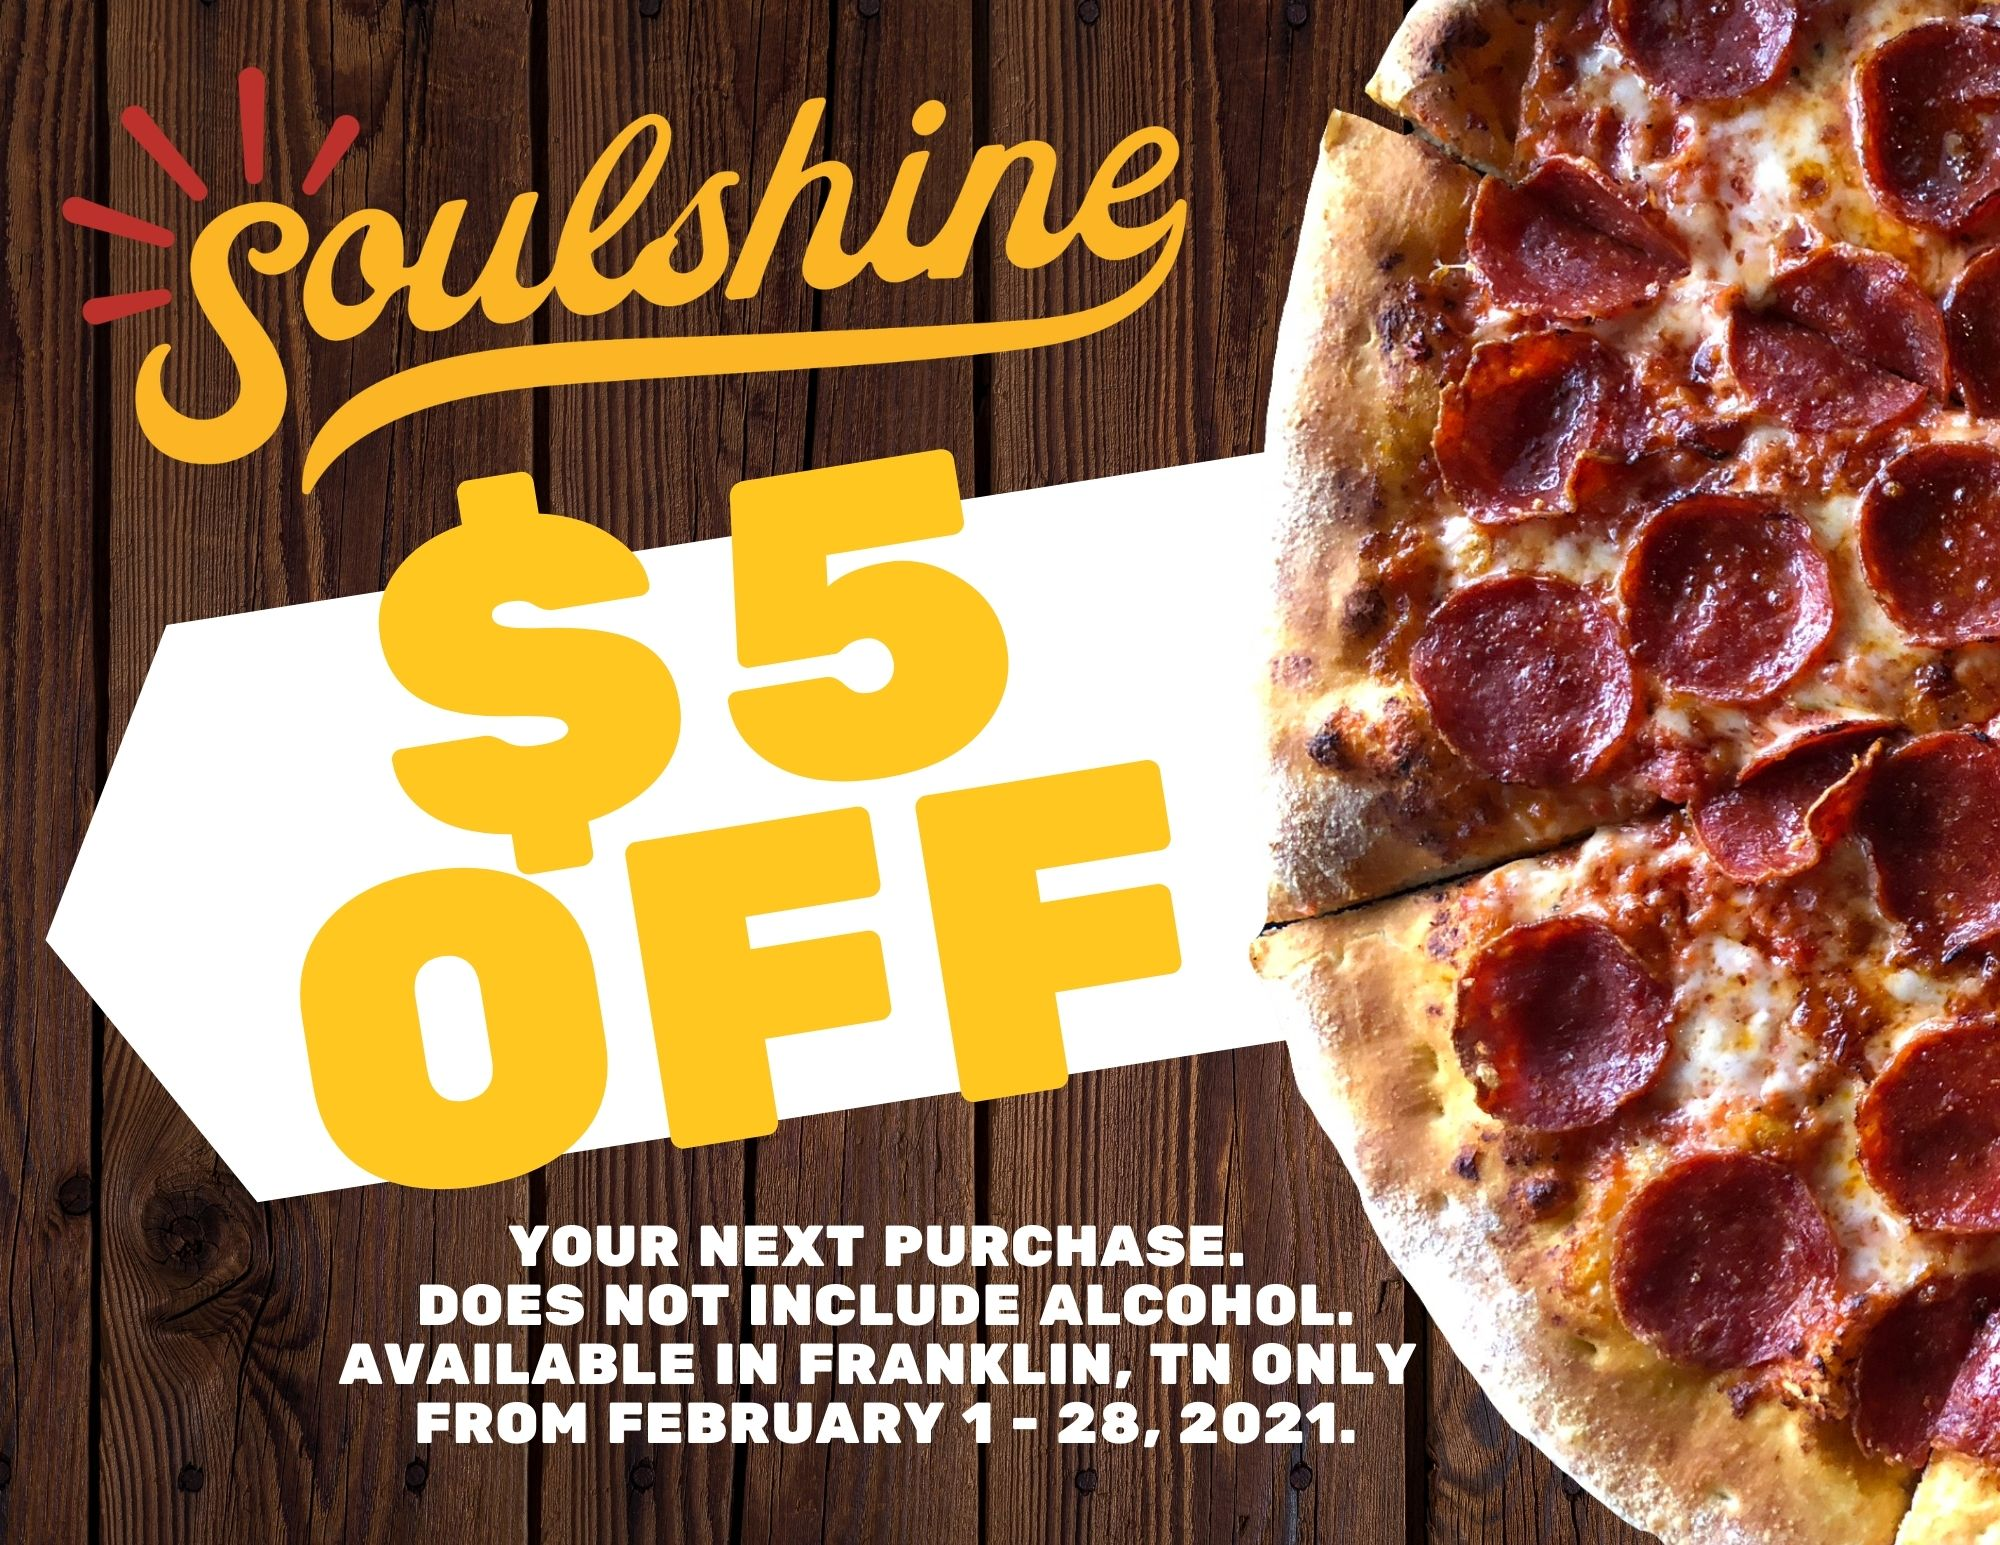 Soulshine $5 Coupon (2)